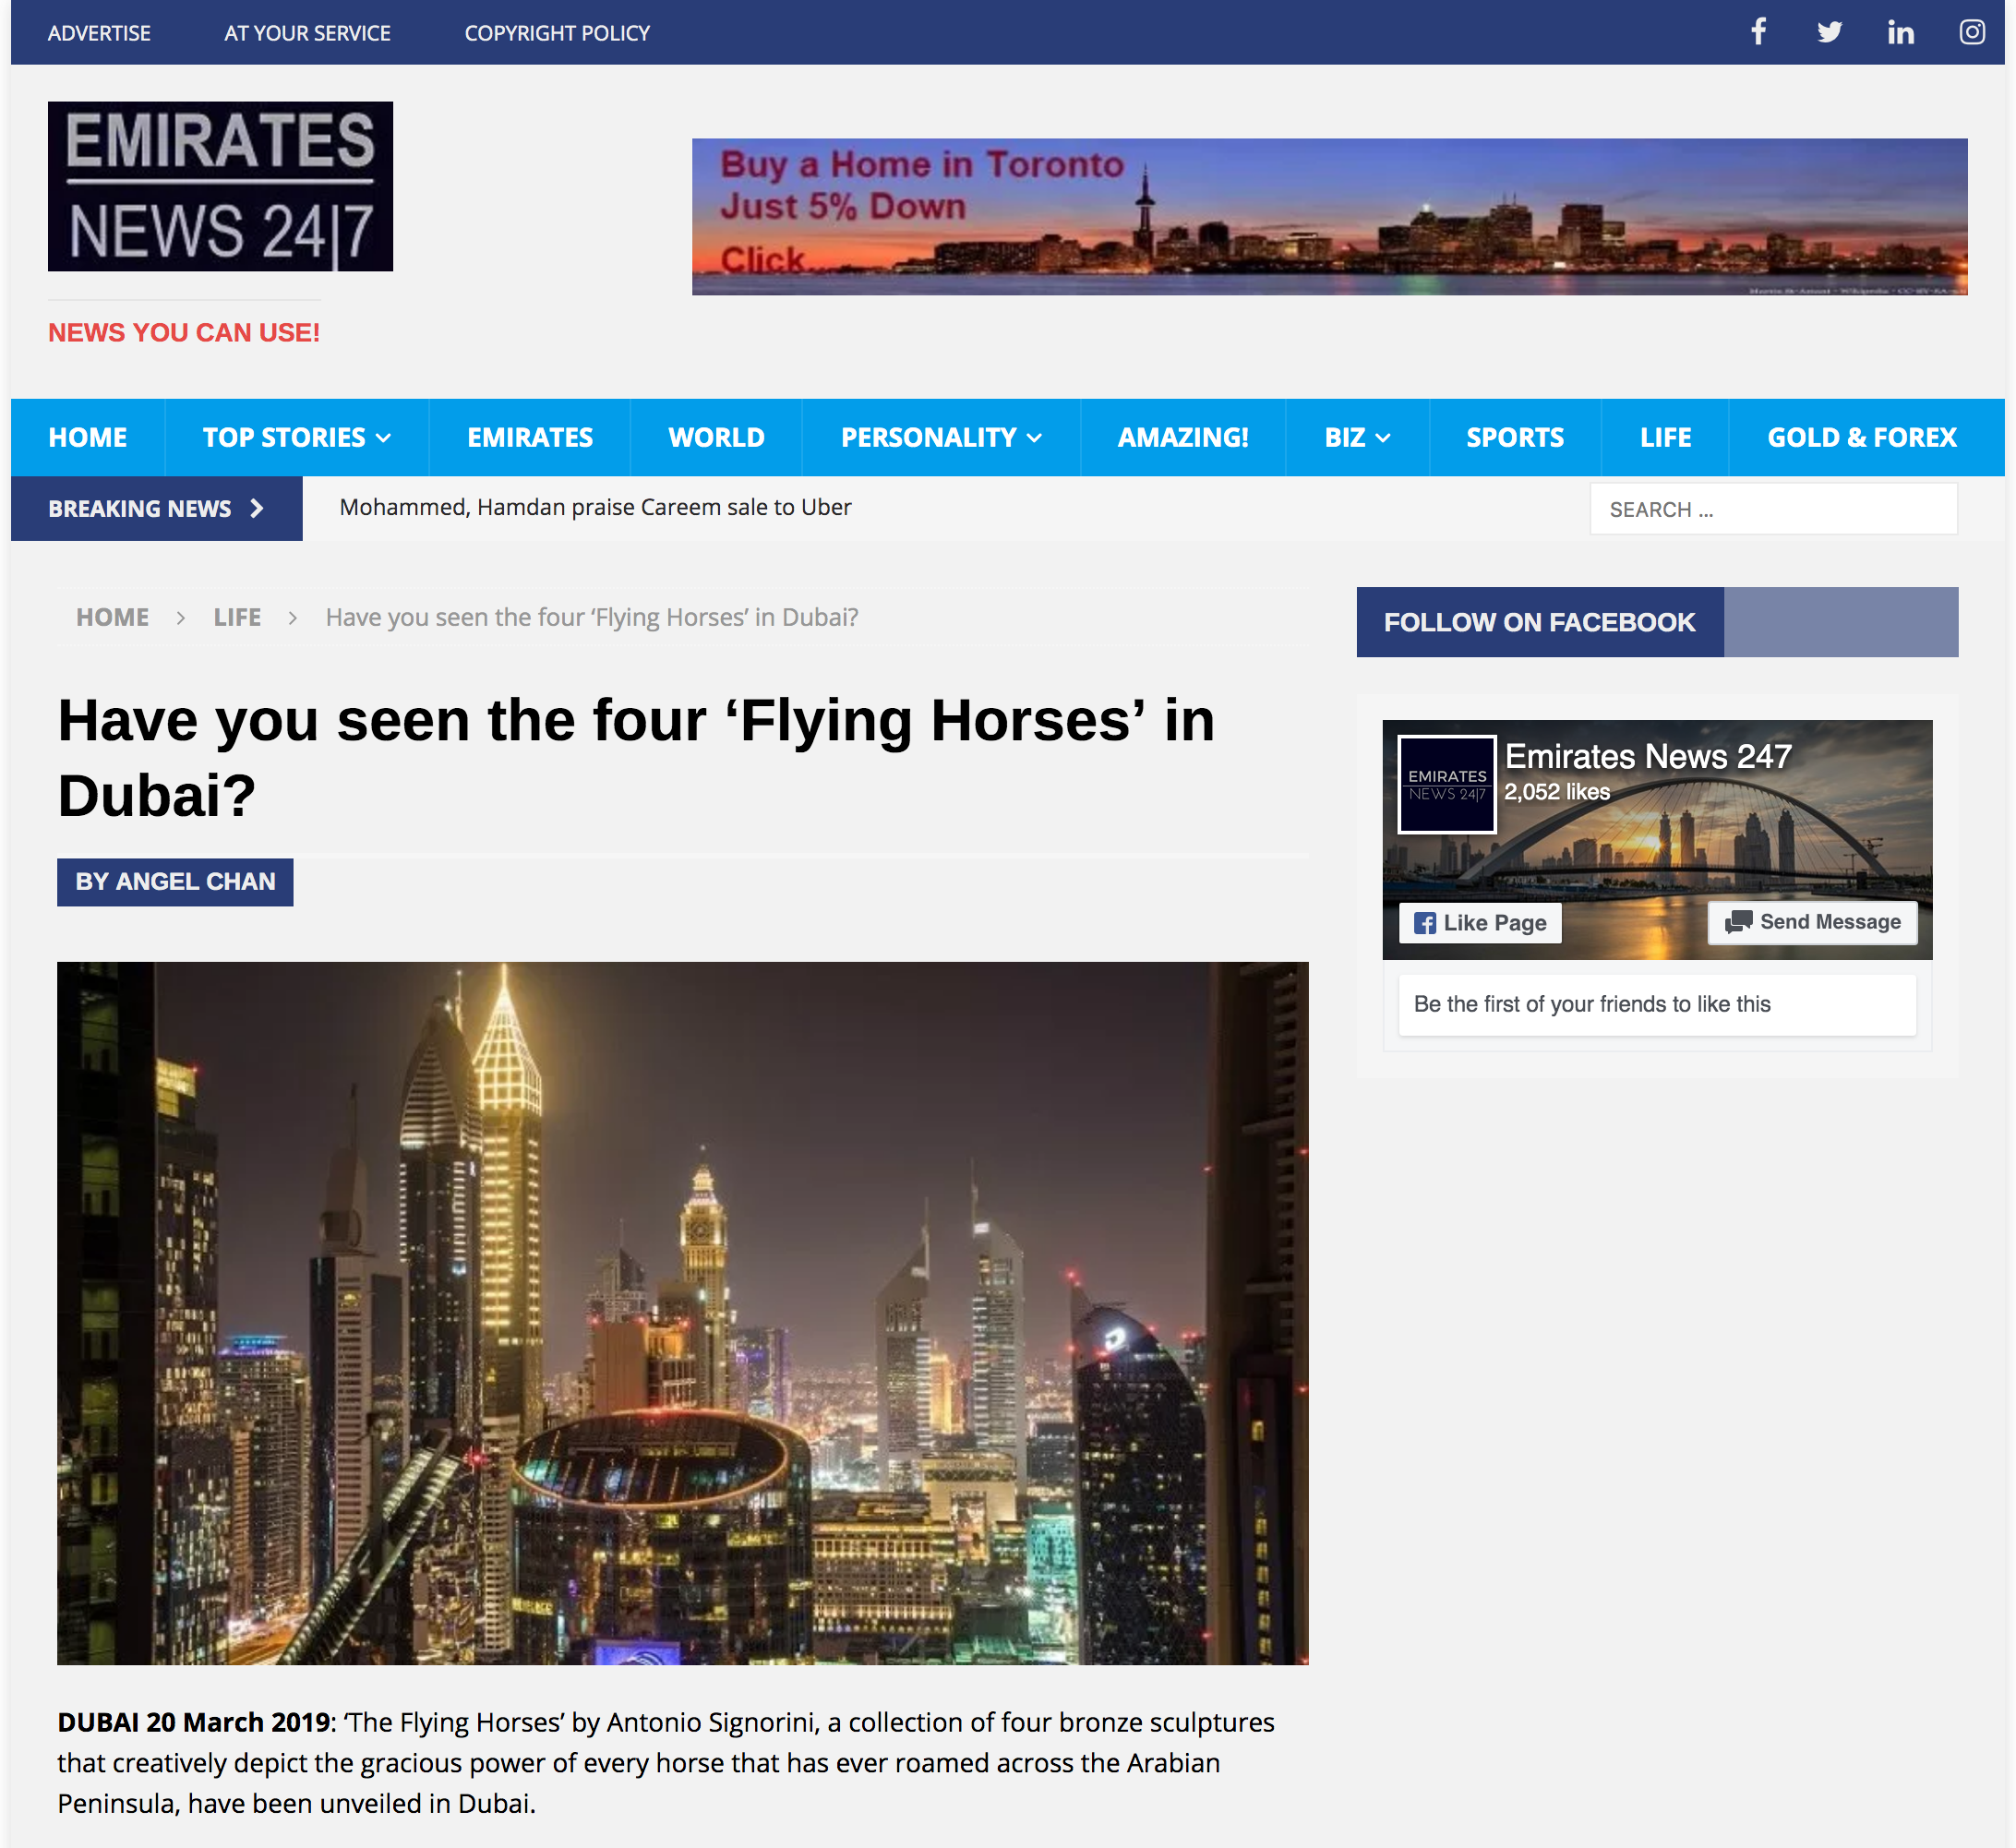 FireShot Capture 003 - Have you seen the four 'Flying Horses' in Dubai_ - www.emiratesnews247.com.png